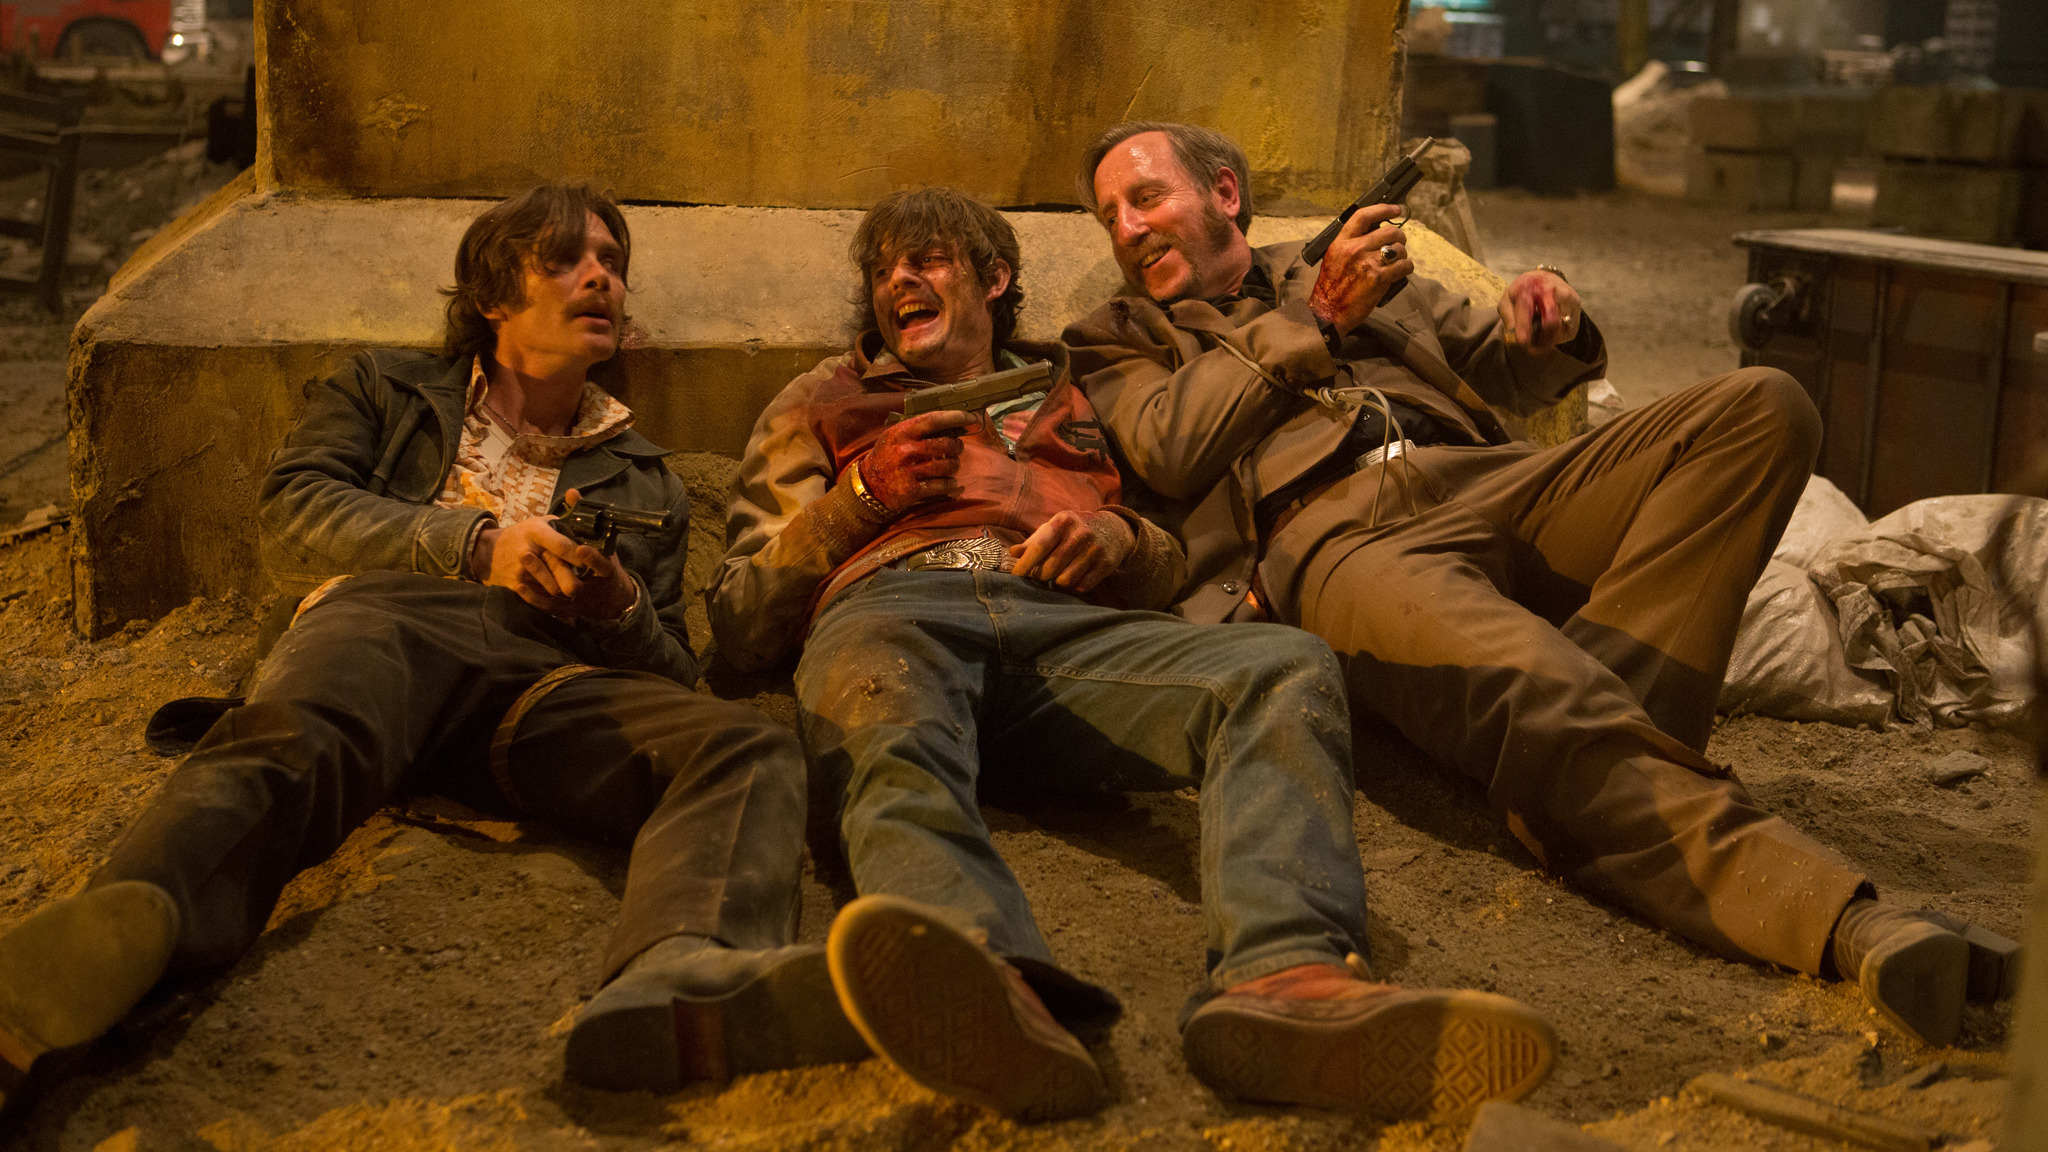 Cillian Murphy, Sam Riley, and Michael Smiley in Free Fire (2016)